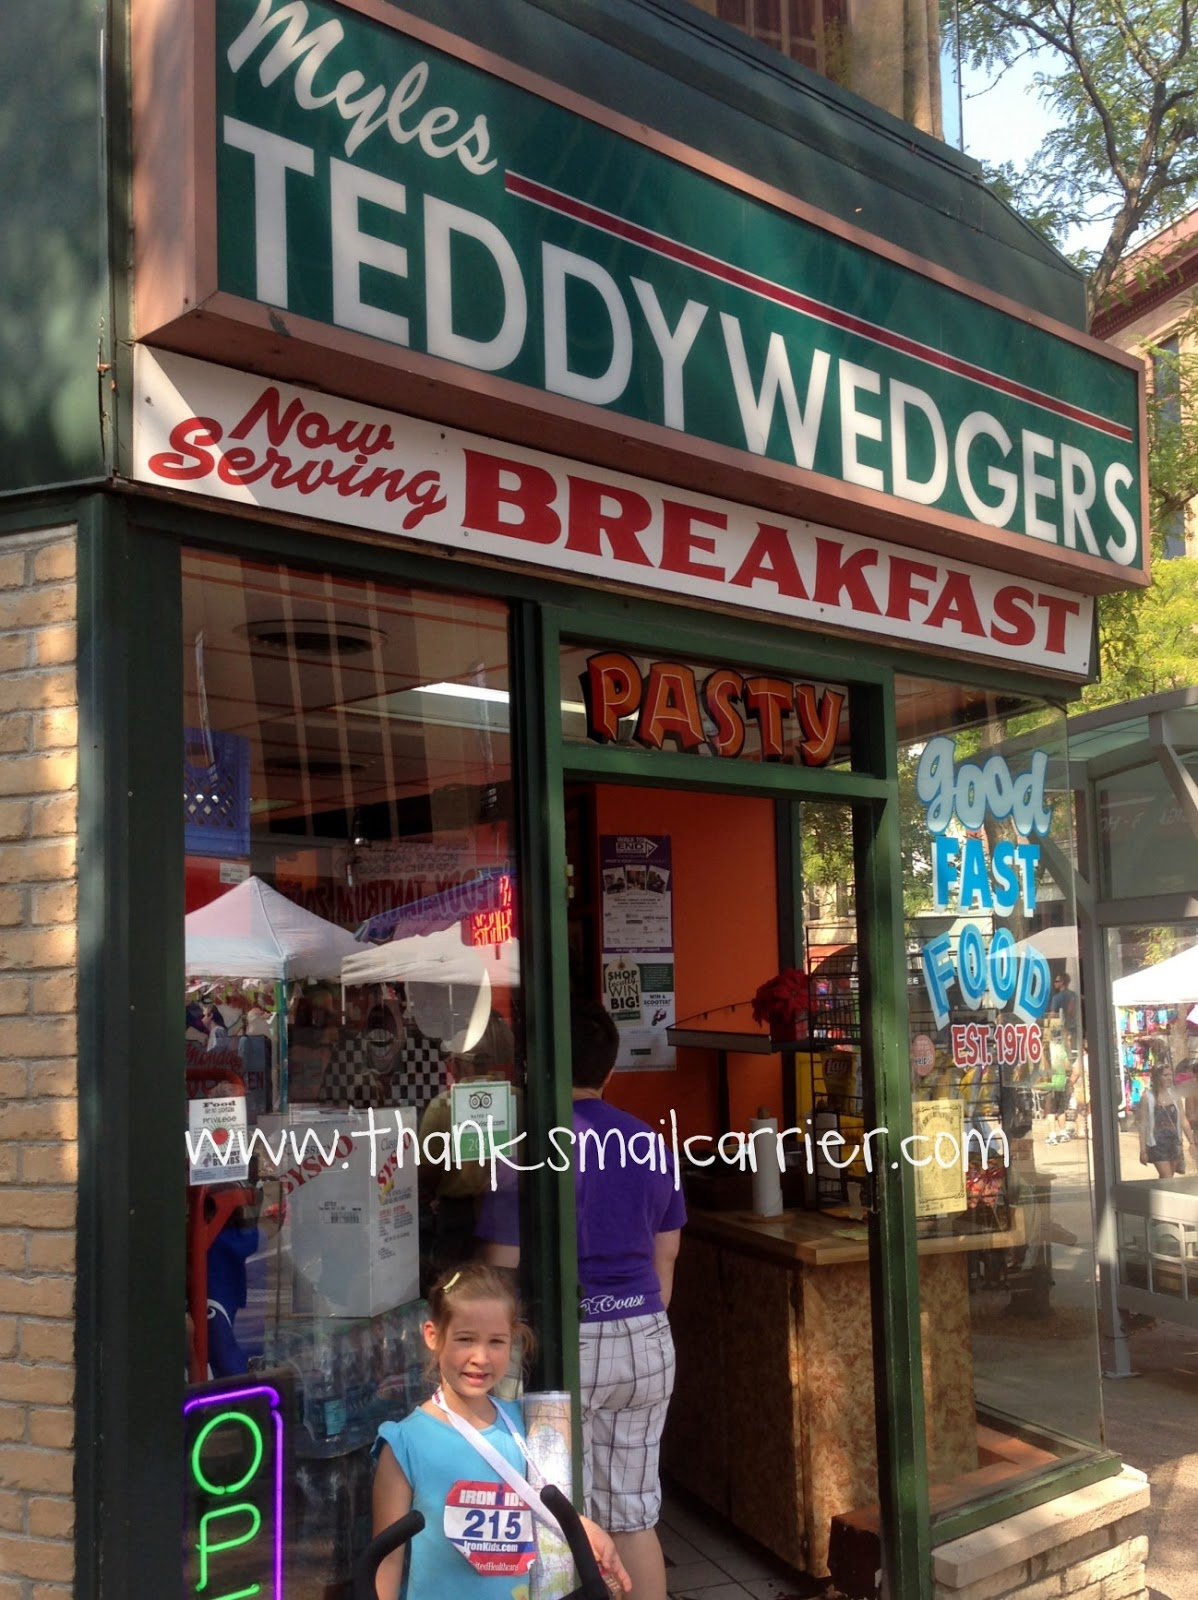 Teddywedgers Madison